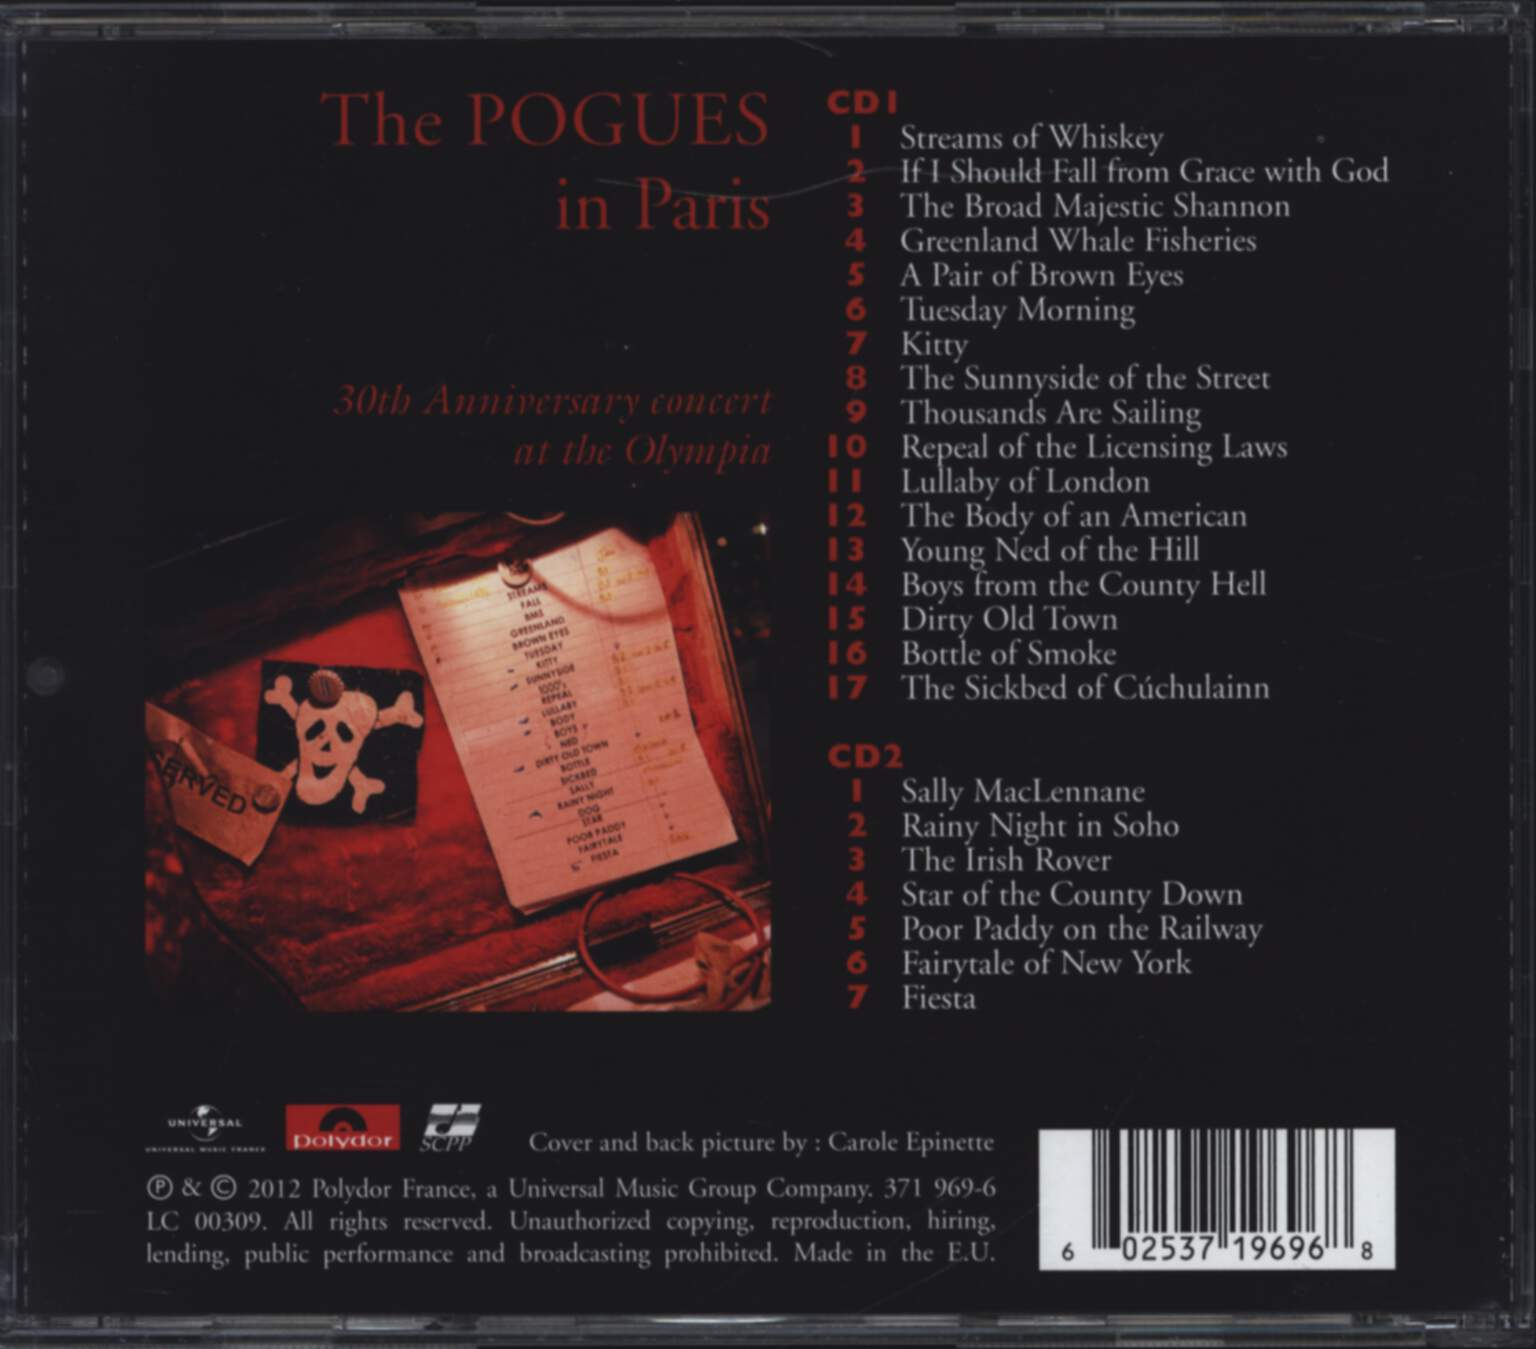 The Pogues: In Paris - 30th Anniversary Concert At The Olympia, CD